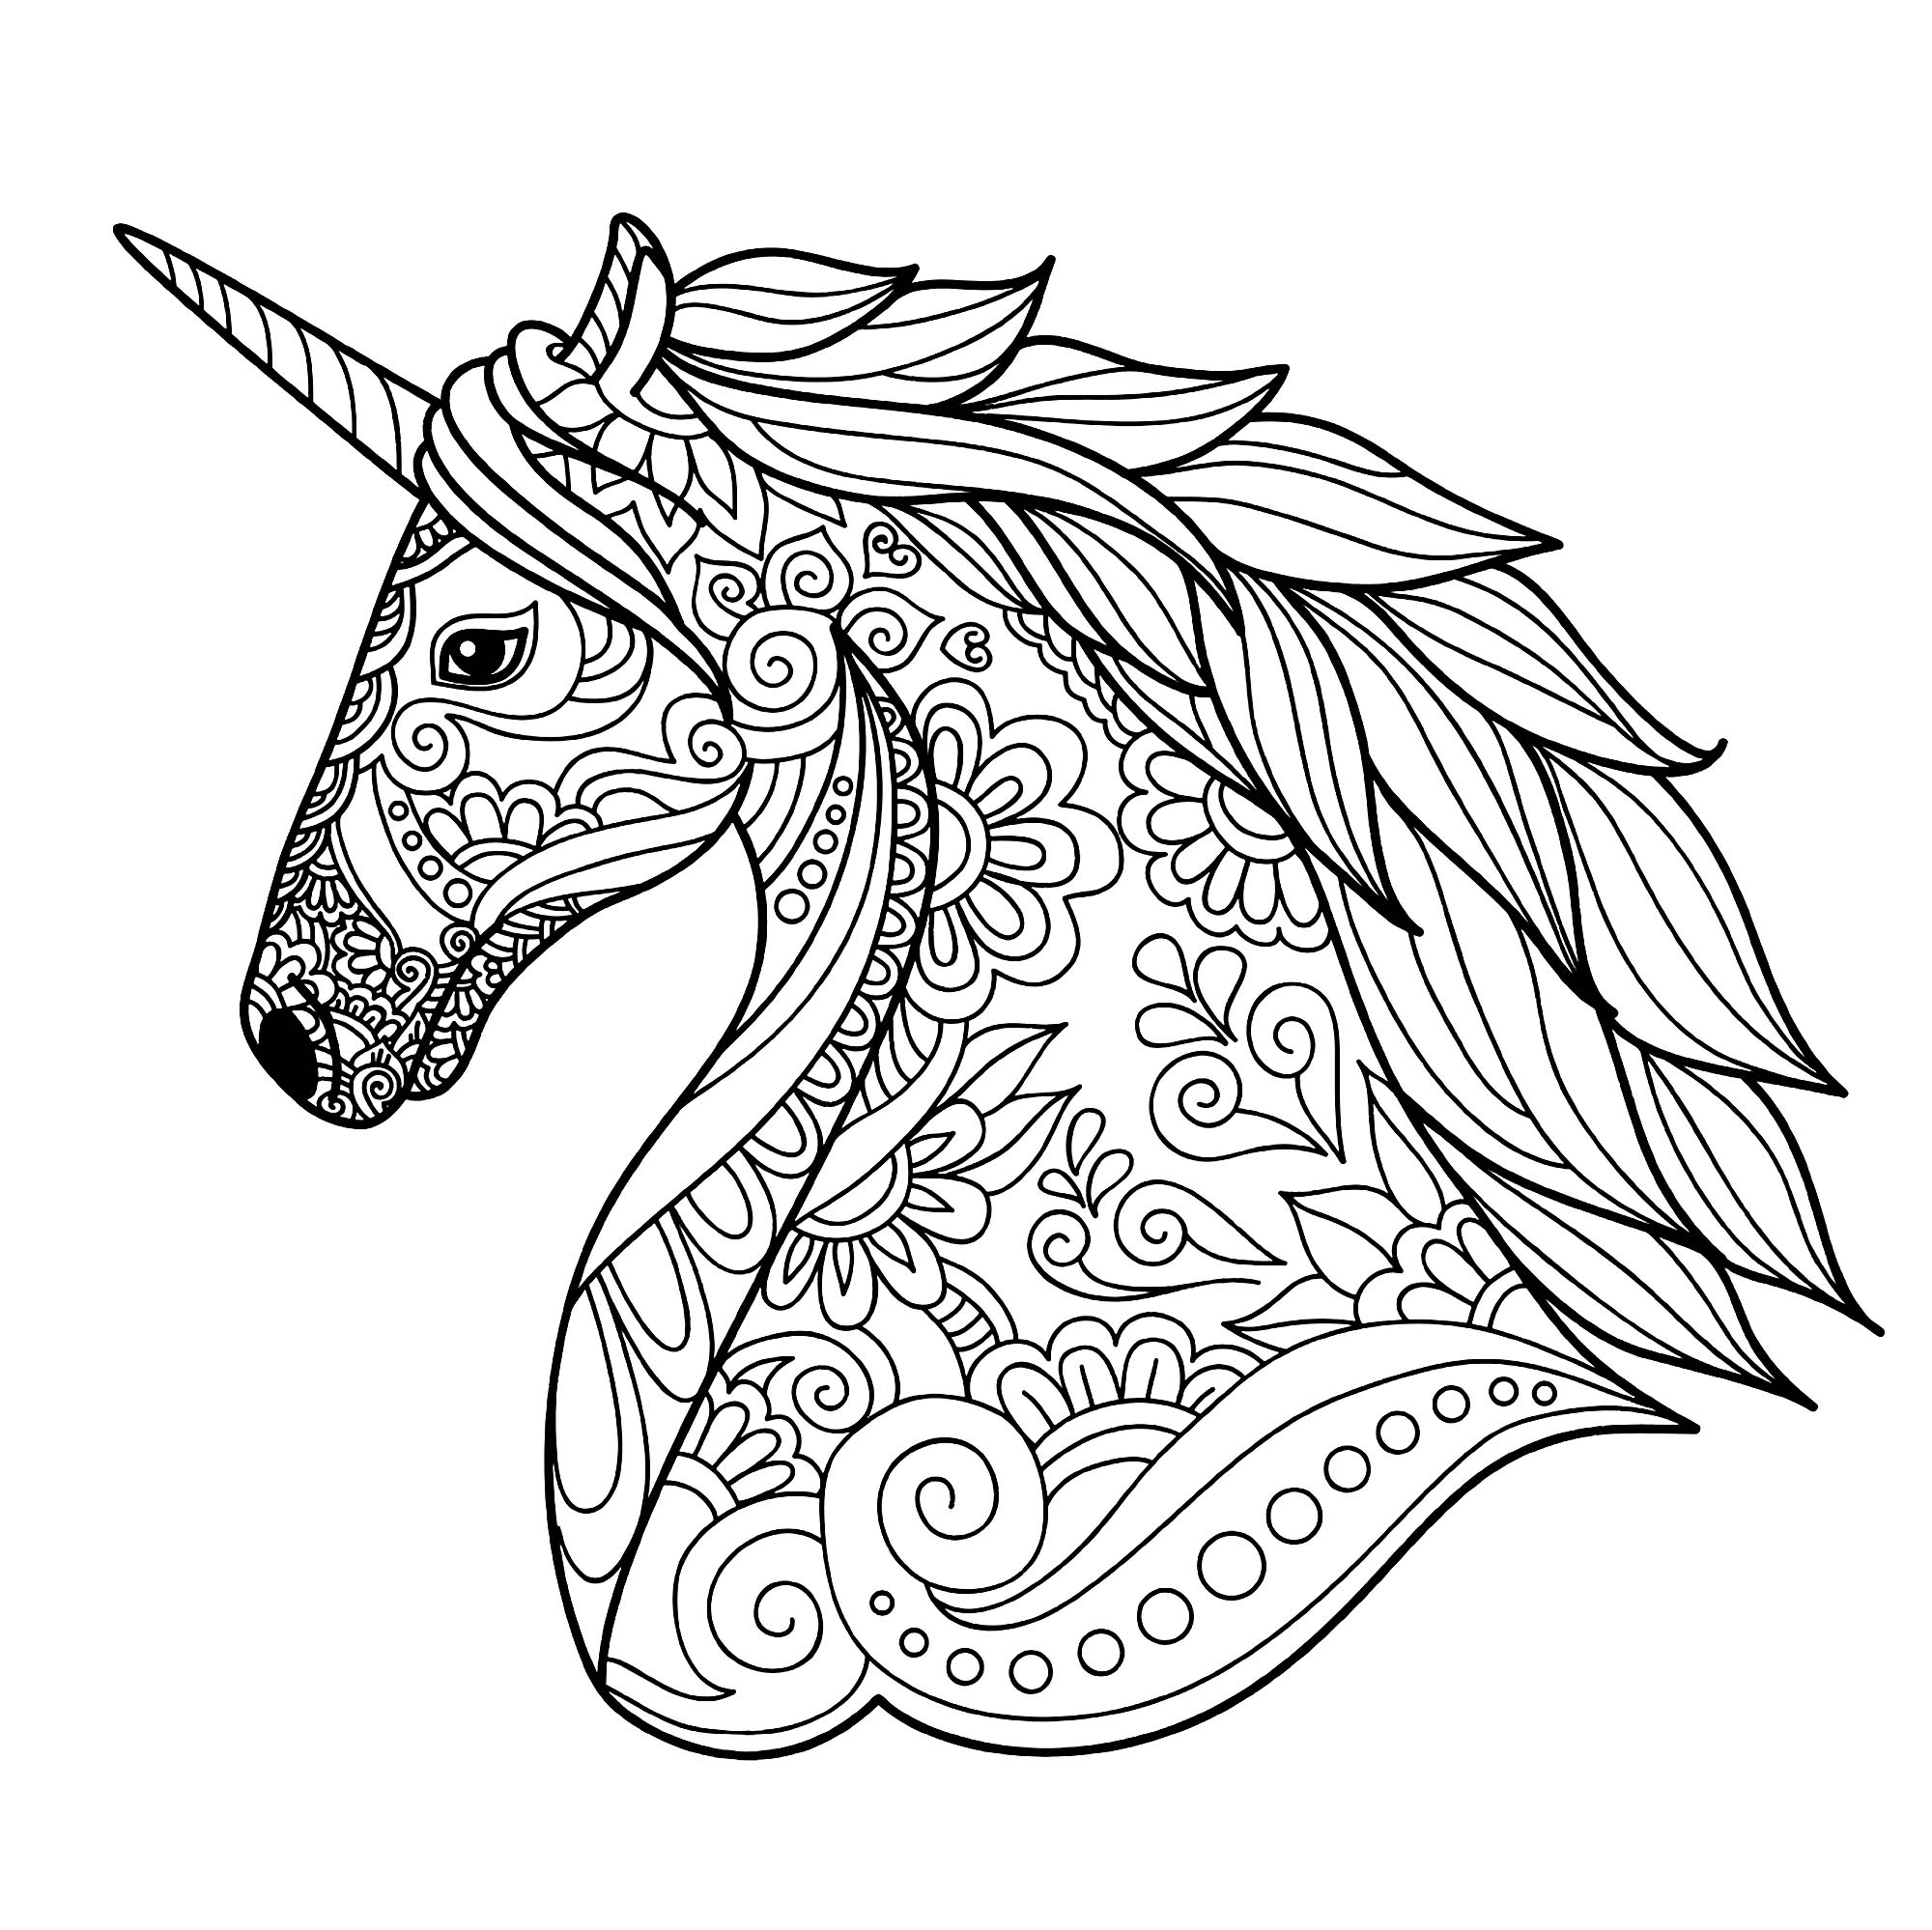 Tete de licorne simple licornes coloriages difficiles pour adultes - Dessin de licorne a colorier ...